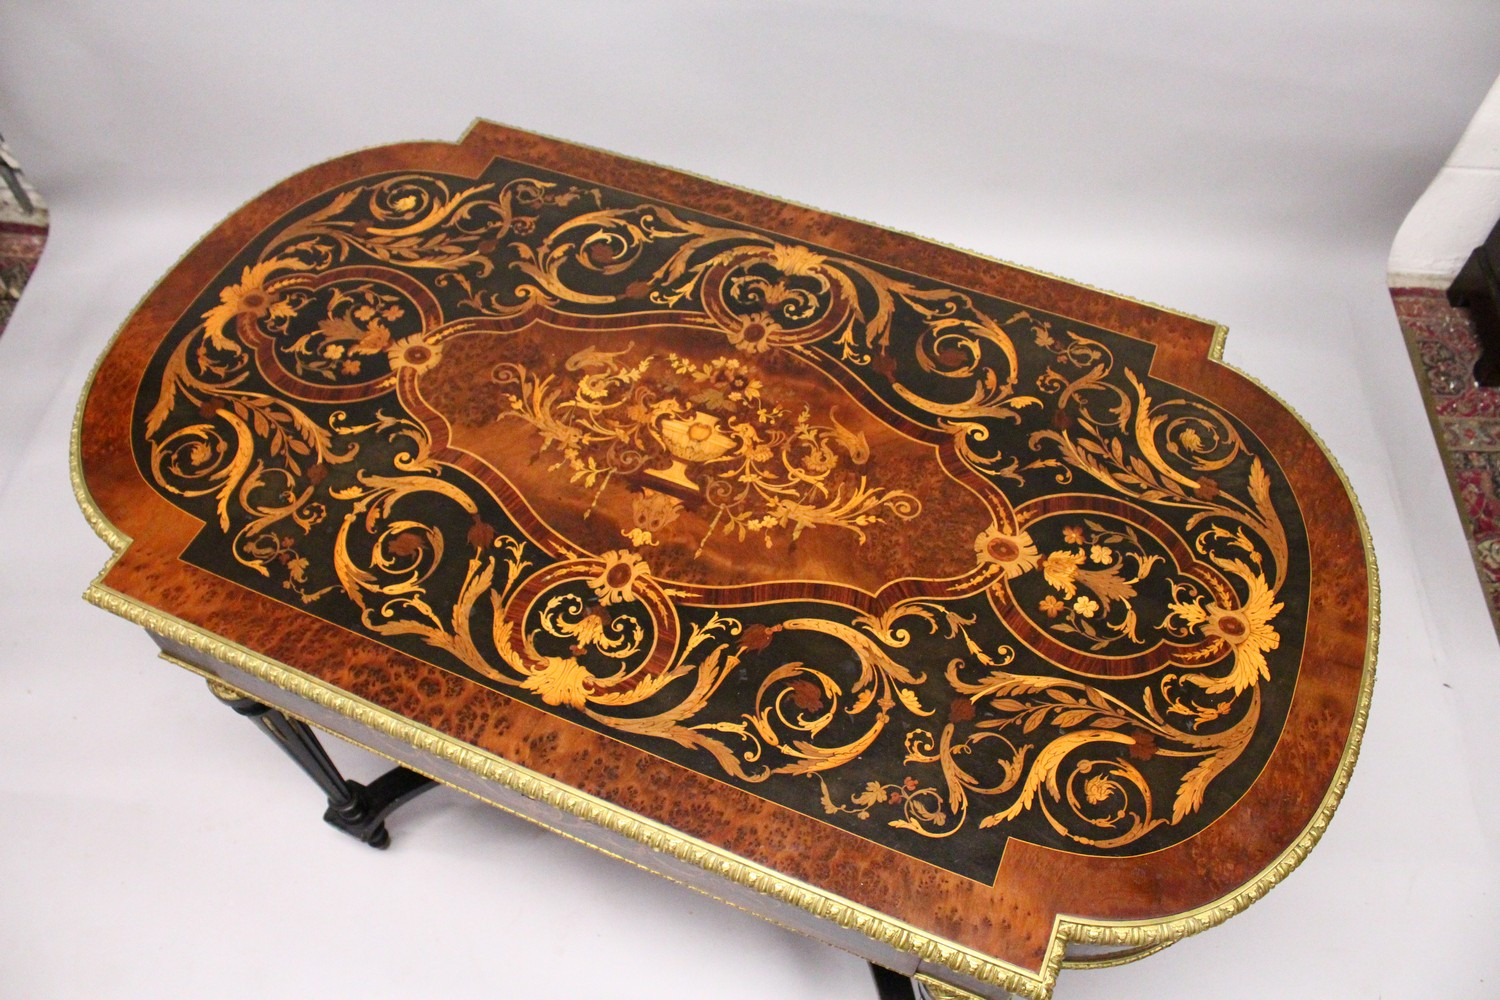 Lot 1007 - A GOOD FRENCH MARQUETRY AND ORMOLU CENTRE TABLE, with rounded ends, the top inlaid with exotic woods